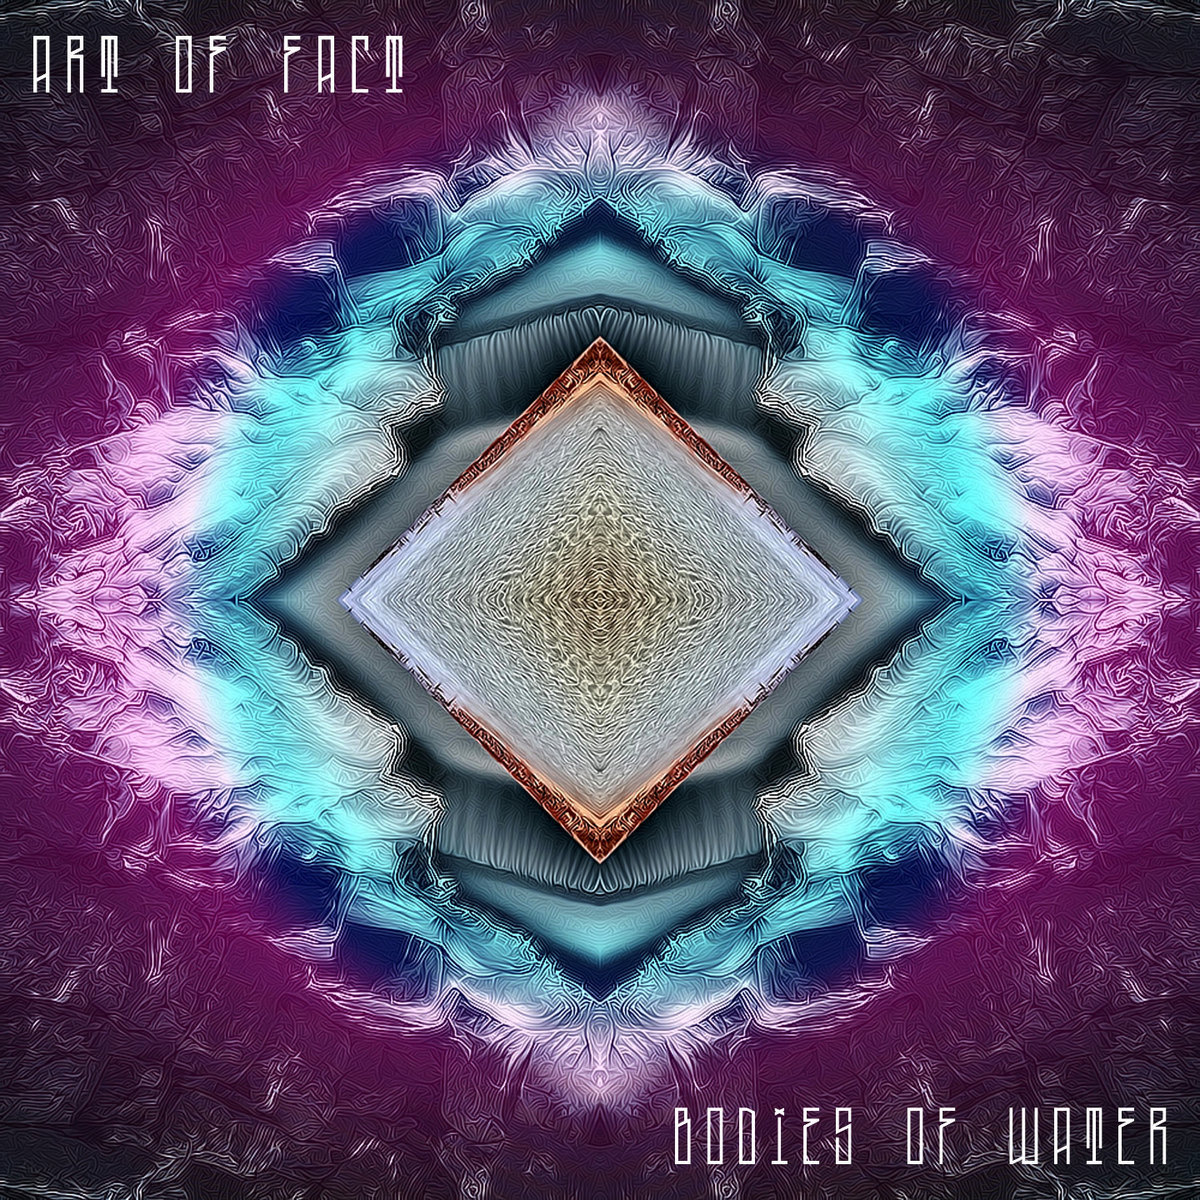 Art of Fact - Velvet Dew Drops (Bless the A.M. Remix) @ 'Bodies of Water' album (electronic, dubstep)